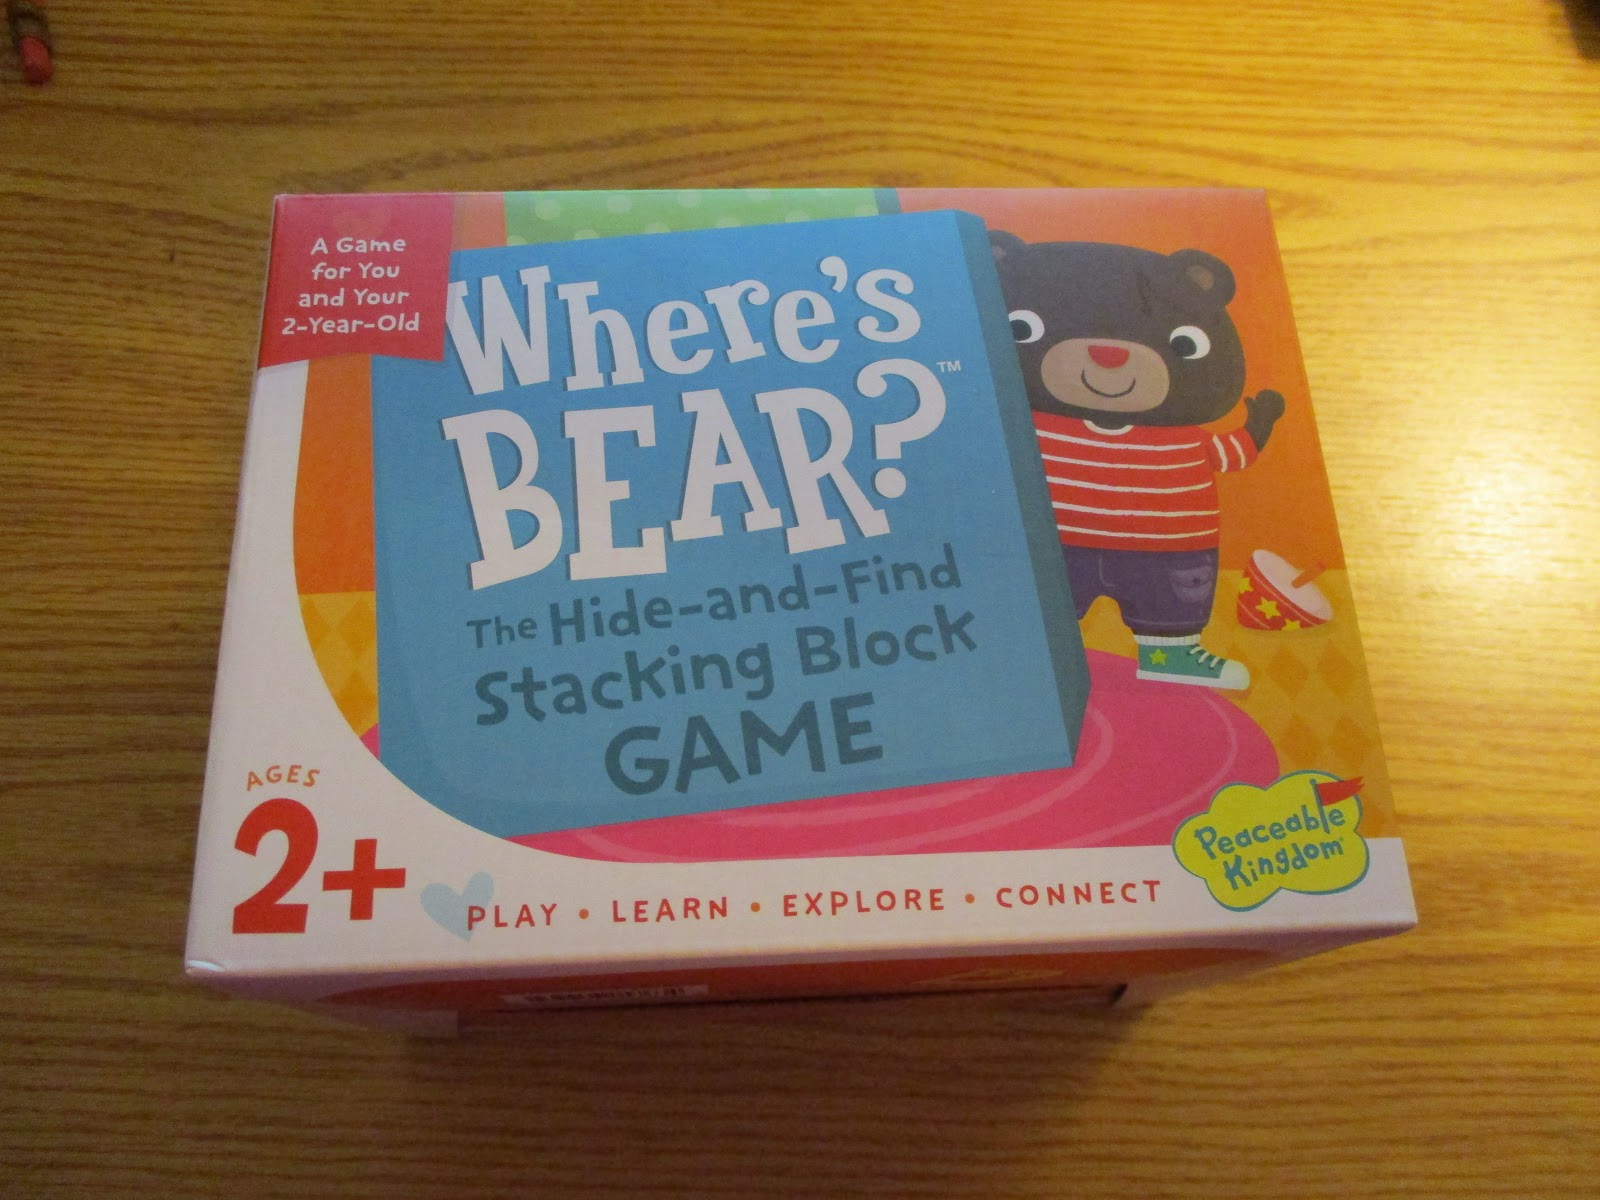 Missys Product Reviews : Where's Bear? The Hide and Find